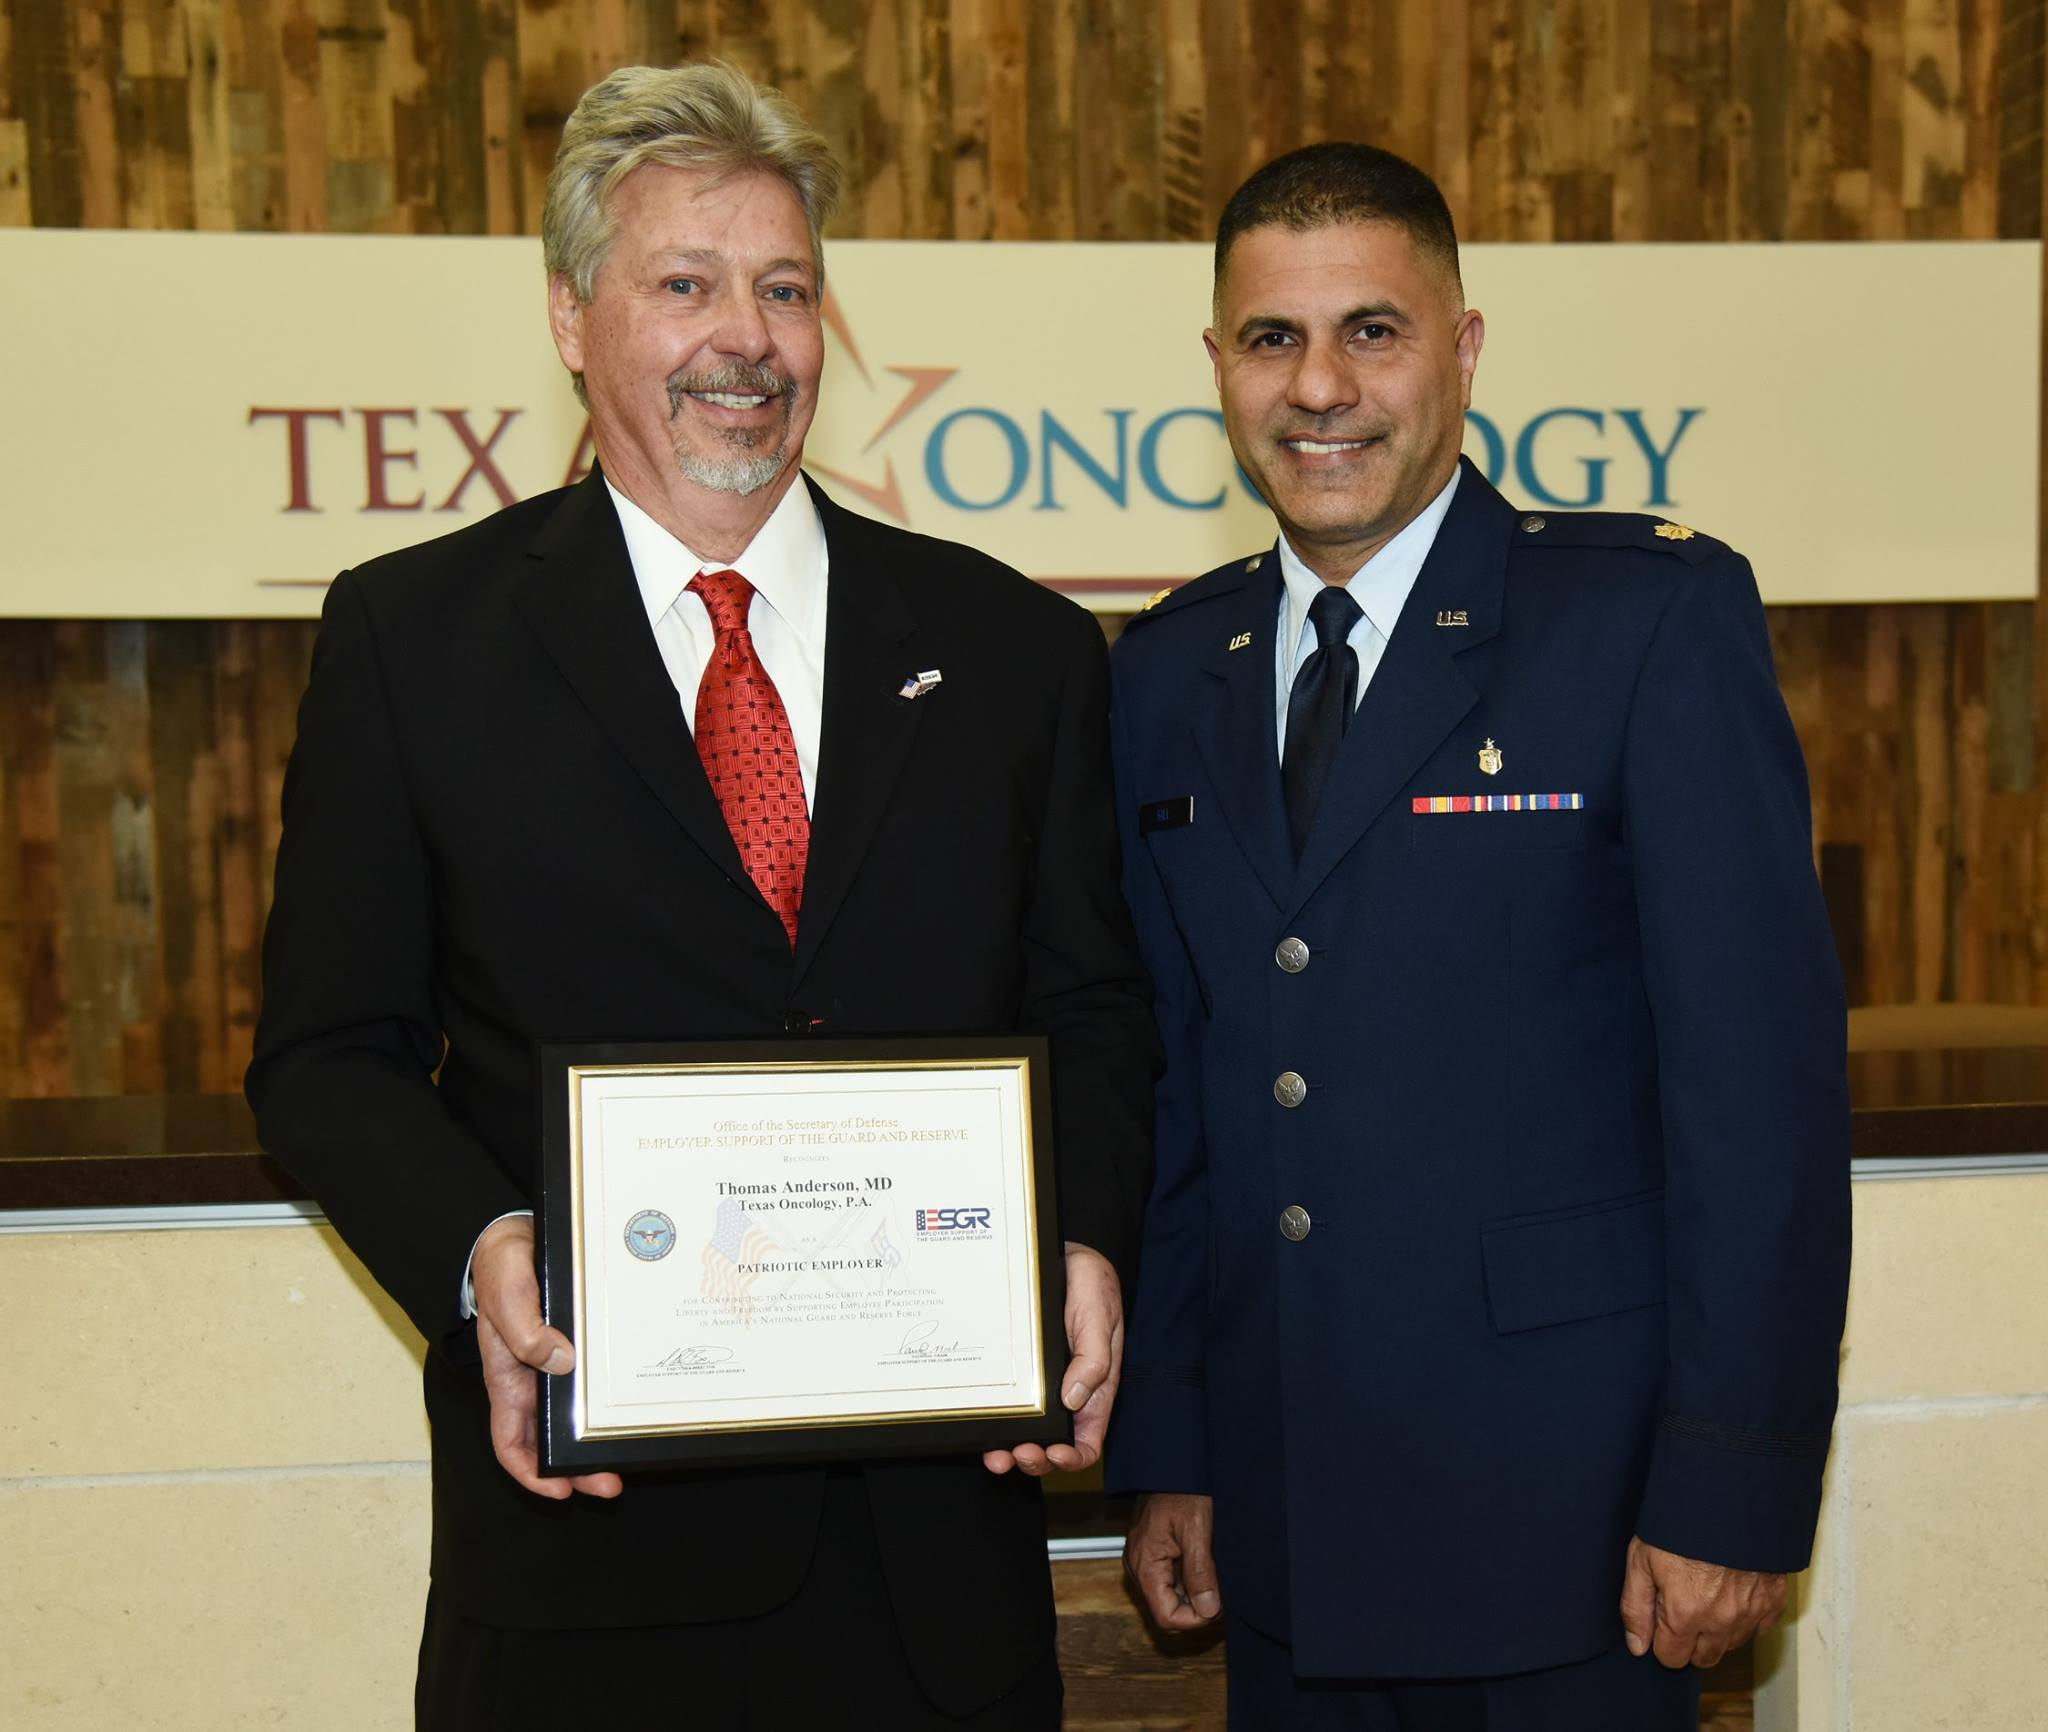 60719a05df3 Texas Oncology Physician Honored with Patriot Award - Cambridge